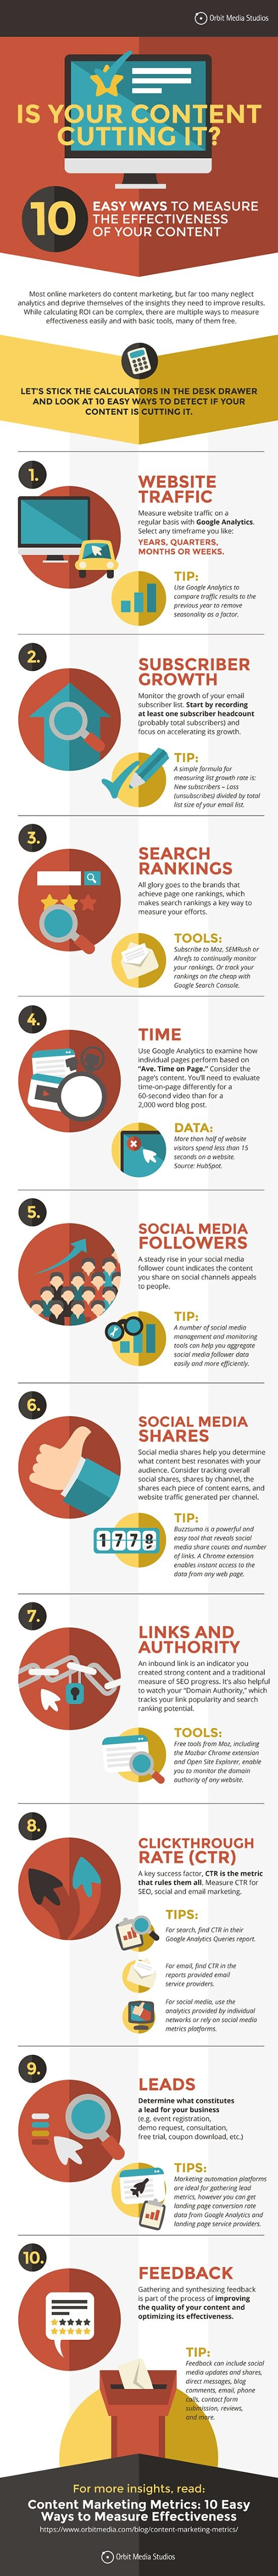 10 Ways to Measure the Effectiveness of Your Content Marketing Strategy [Infographic] | Social Media Today